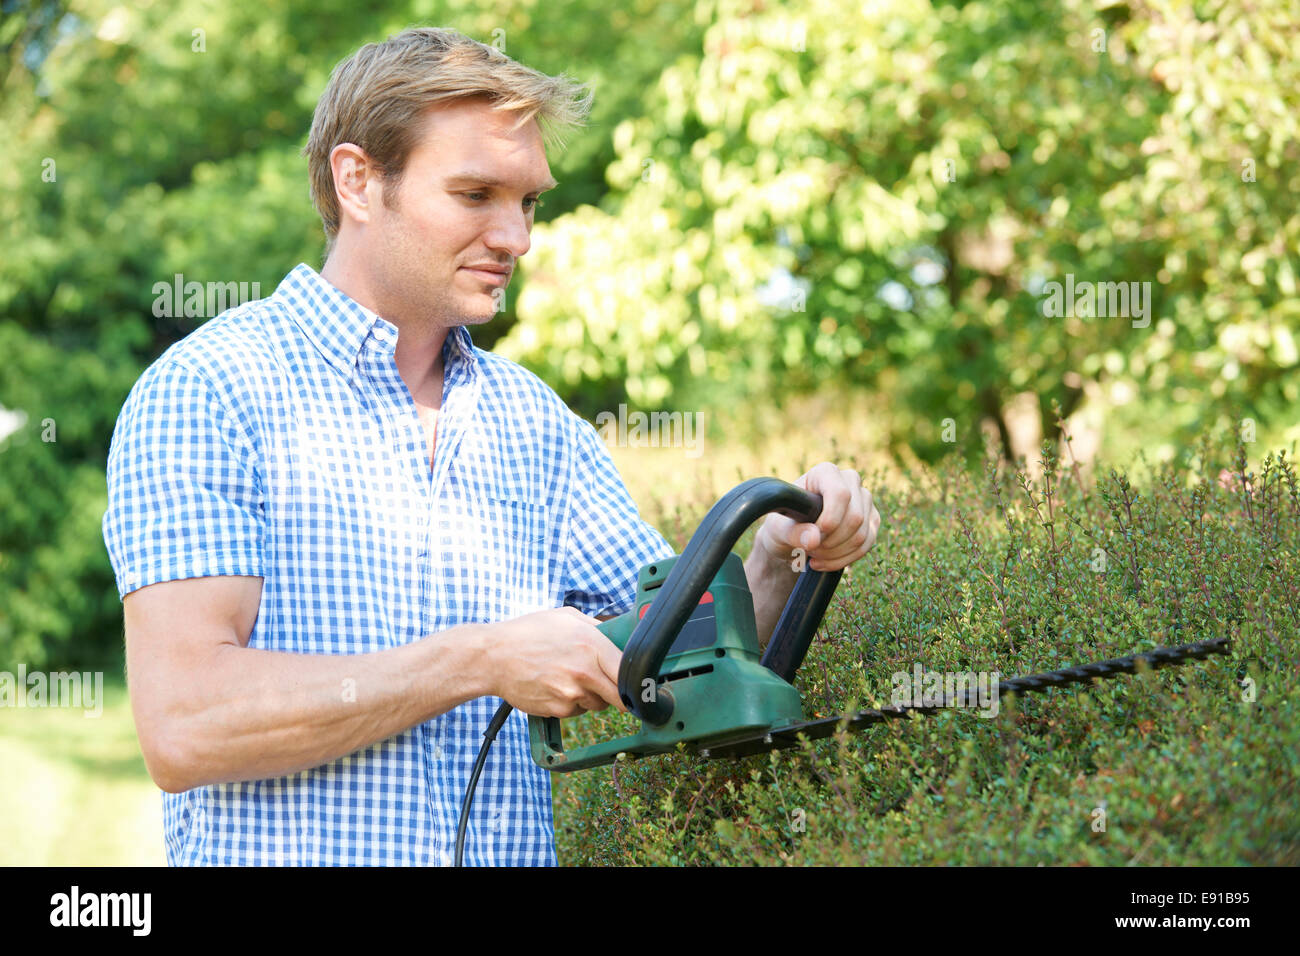 Man Cutting Garden Hedge With Electric Trimmer Stock Photo